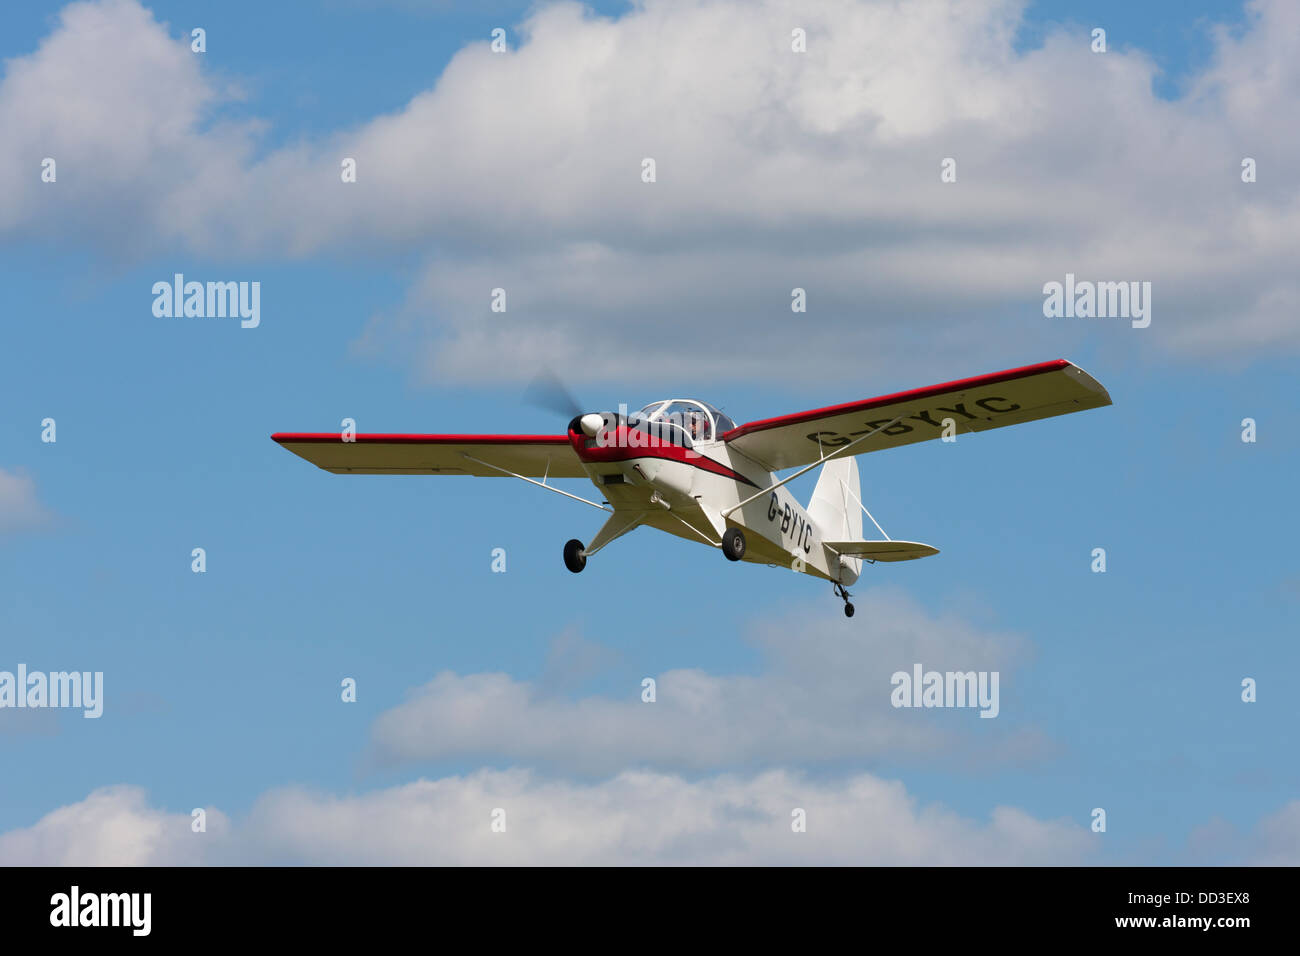 Hapi Cygnet SF-2A G-BYYC on approach to land at Sandtoft Airfield - Stock Image